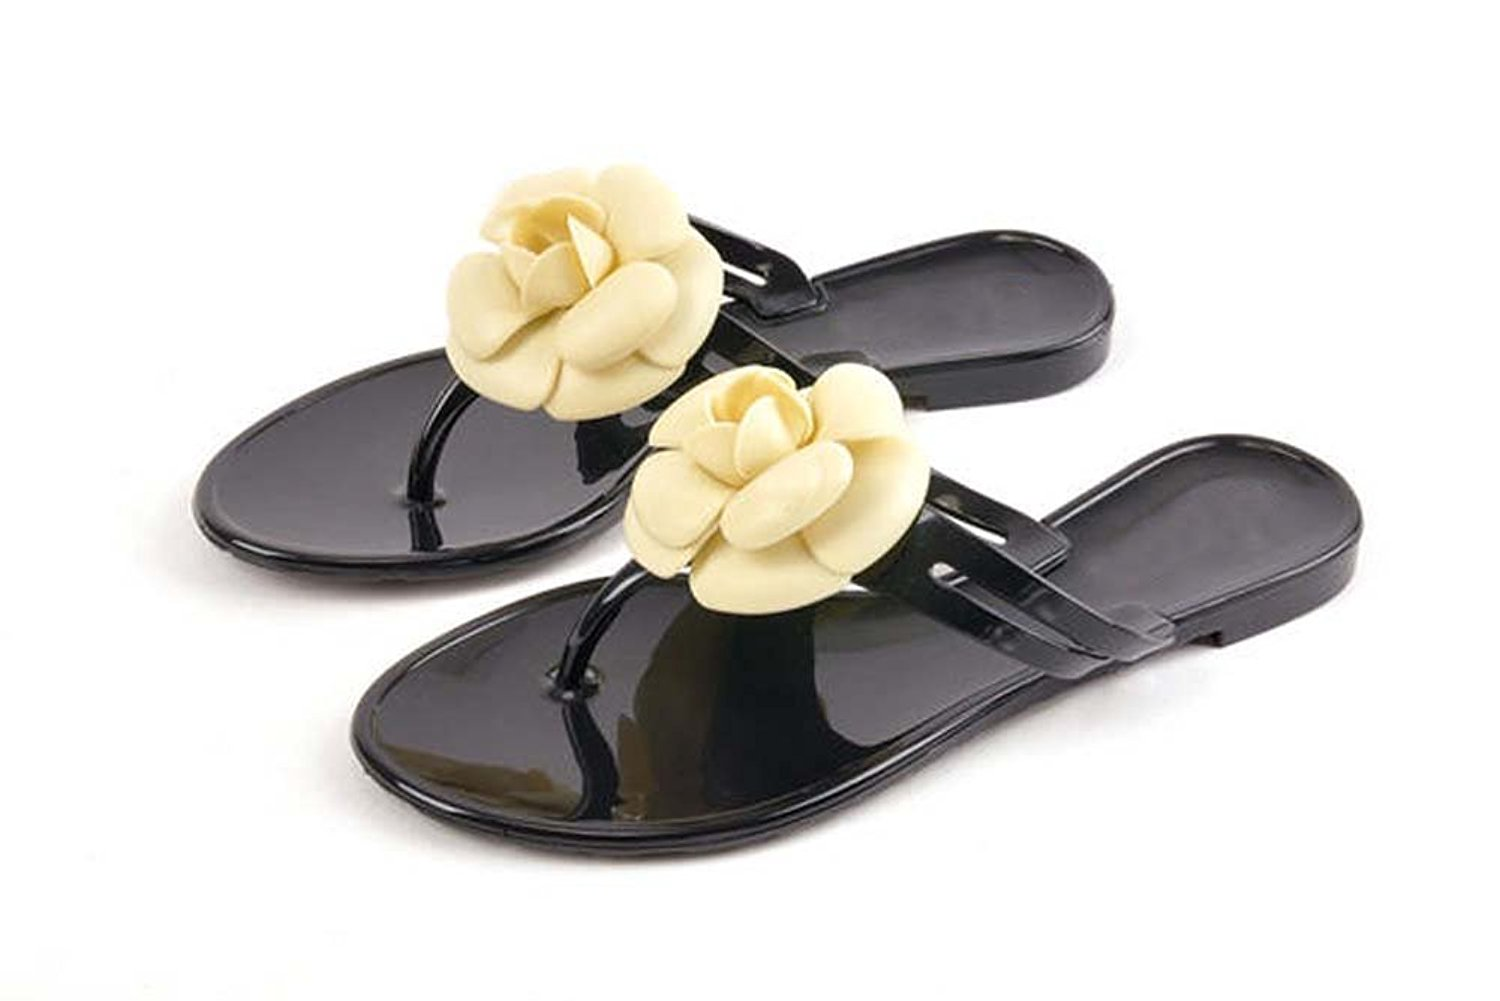 1a37409774bd6a Get Quotations · Woman 2014 Summer Sandals Summer Shoes Camellia Slippers  Flip Flops Jelly Shoes Crystal Flower Sandals Flats